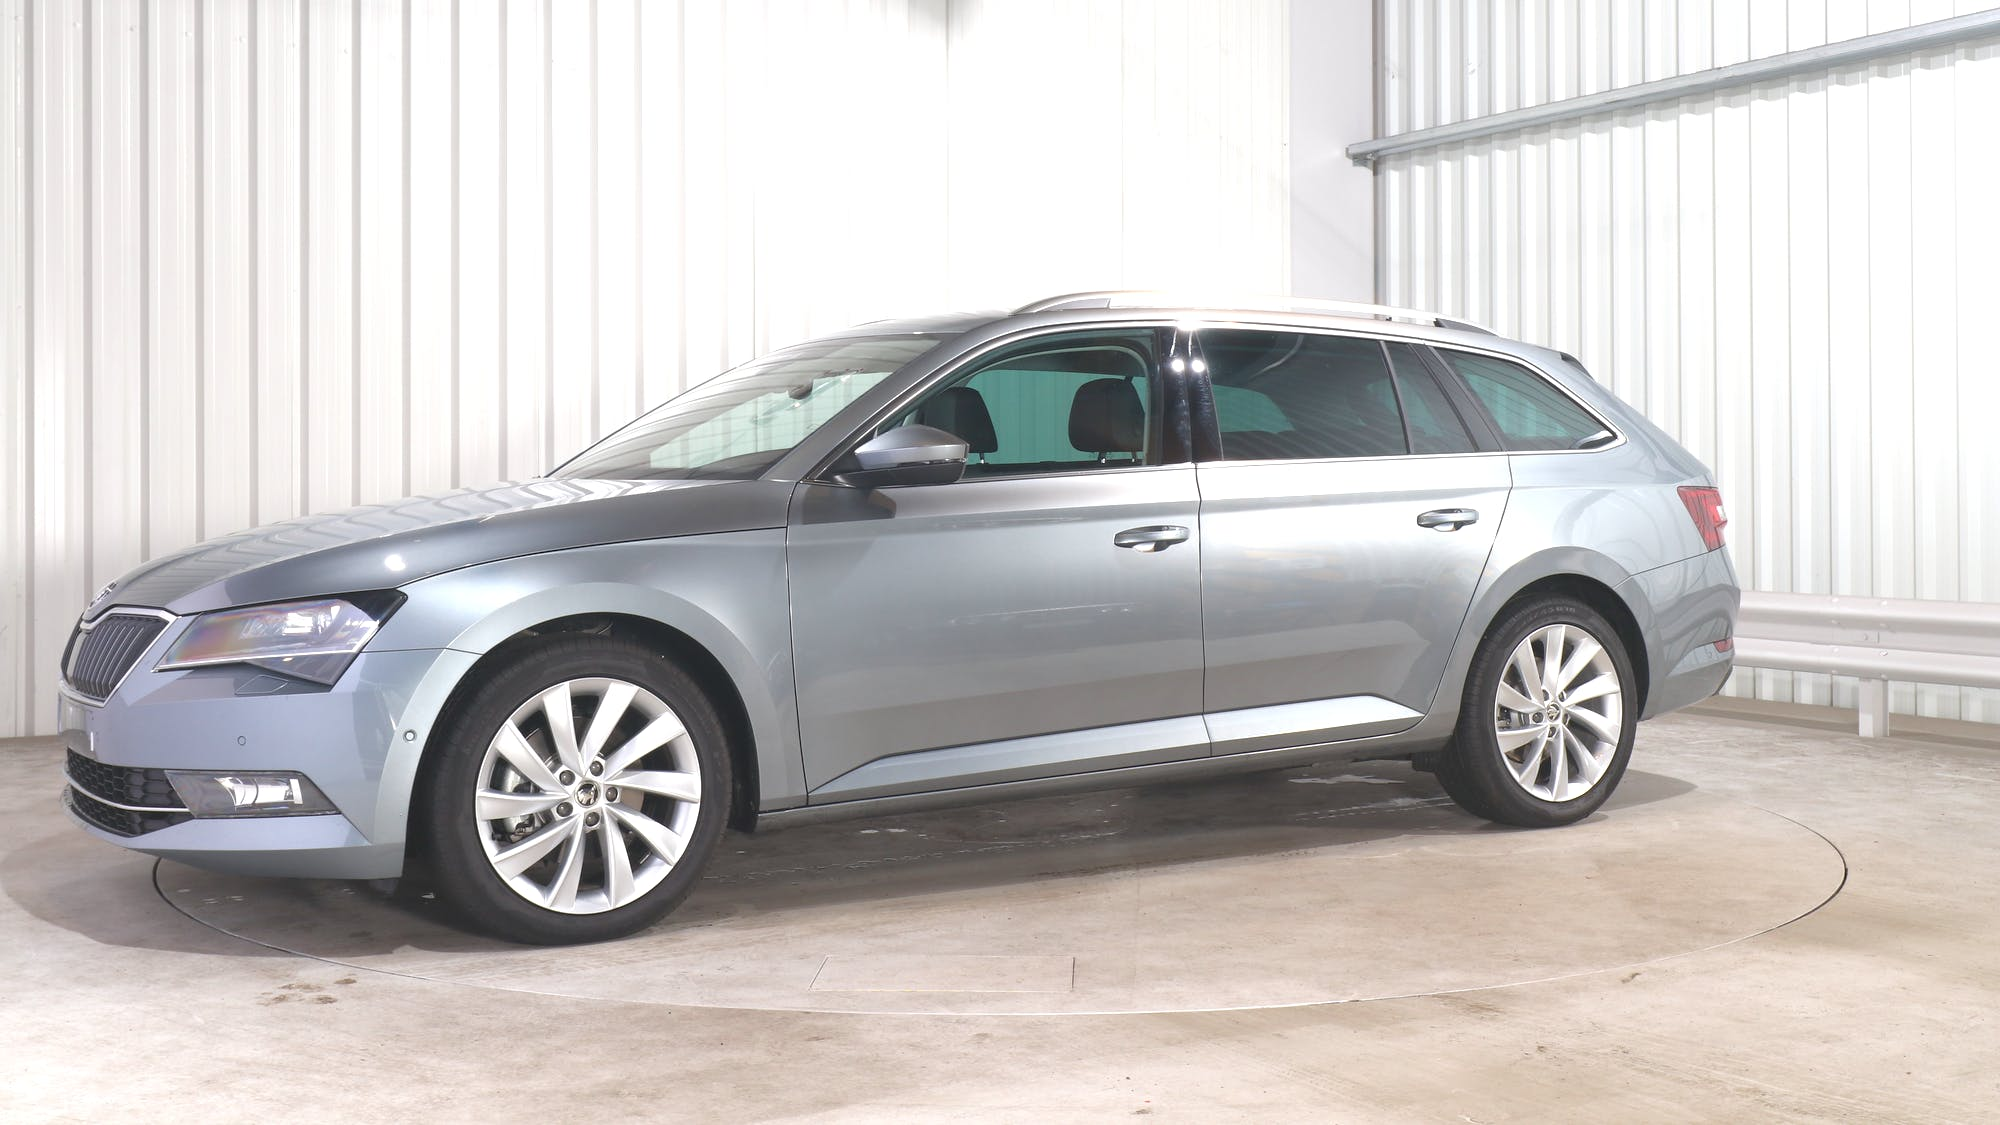 SKODA SUPERB COMBI leasing exterior 1